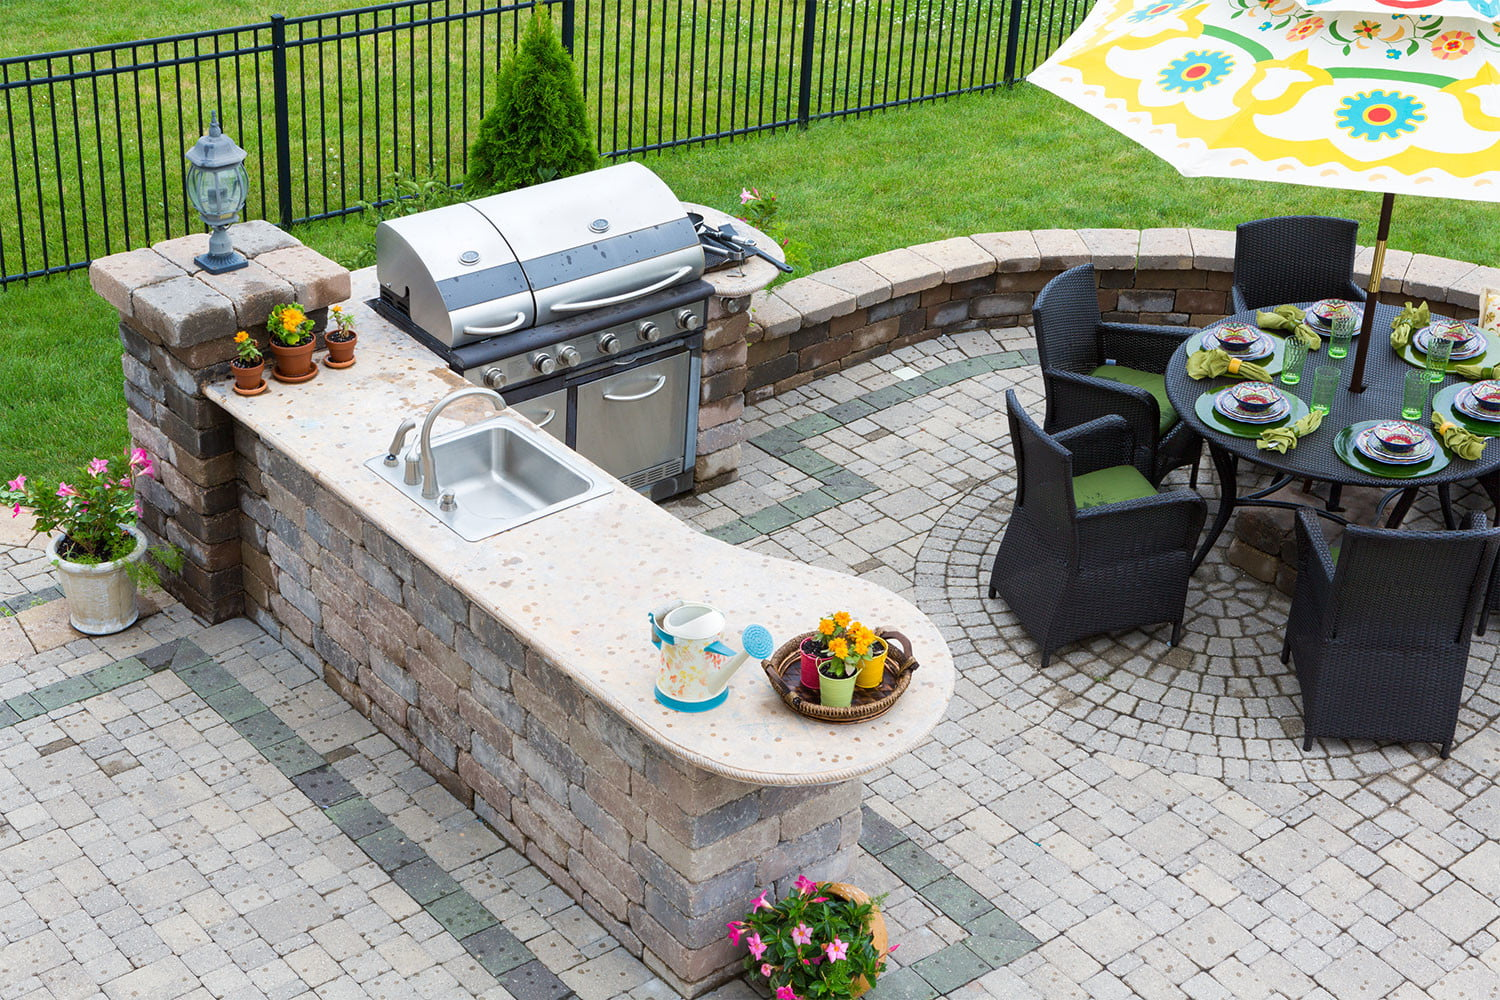 Great outdoor kitchen ideas for small spaces   HappySprout